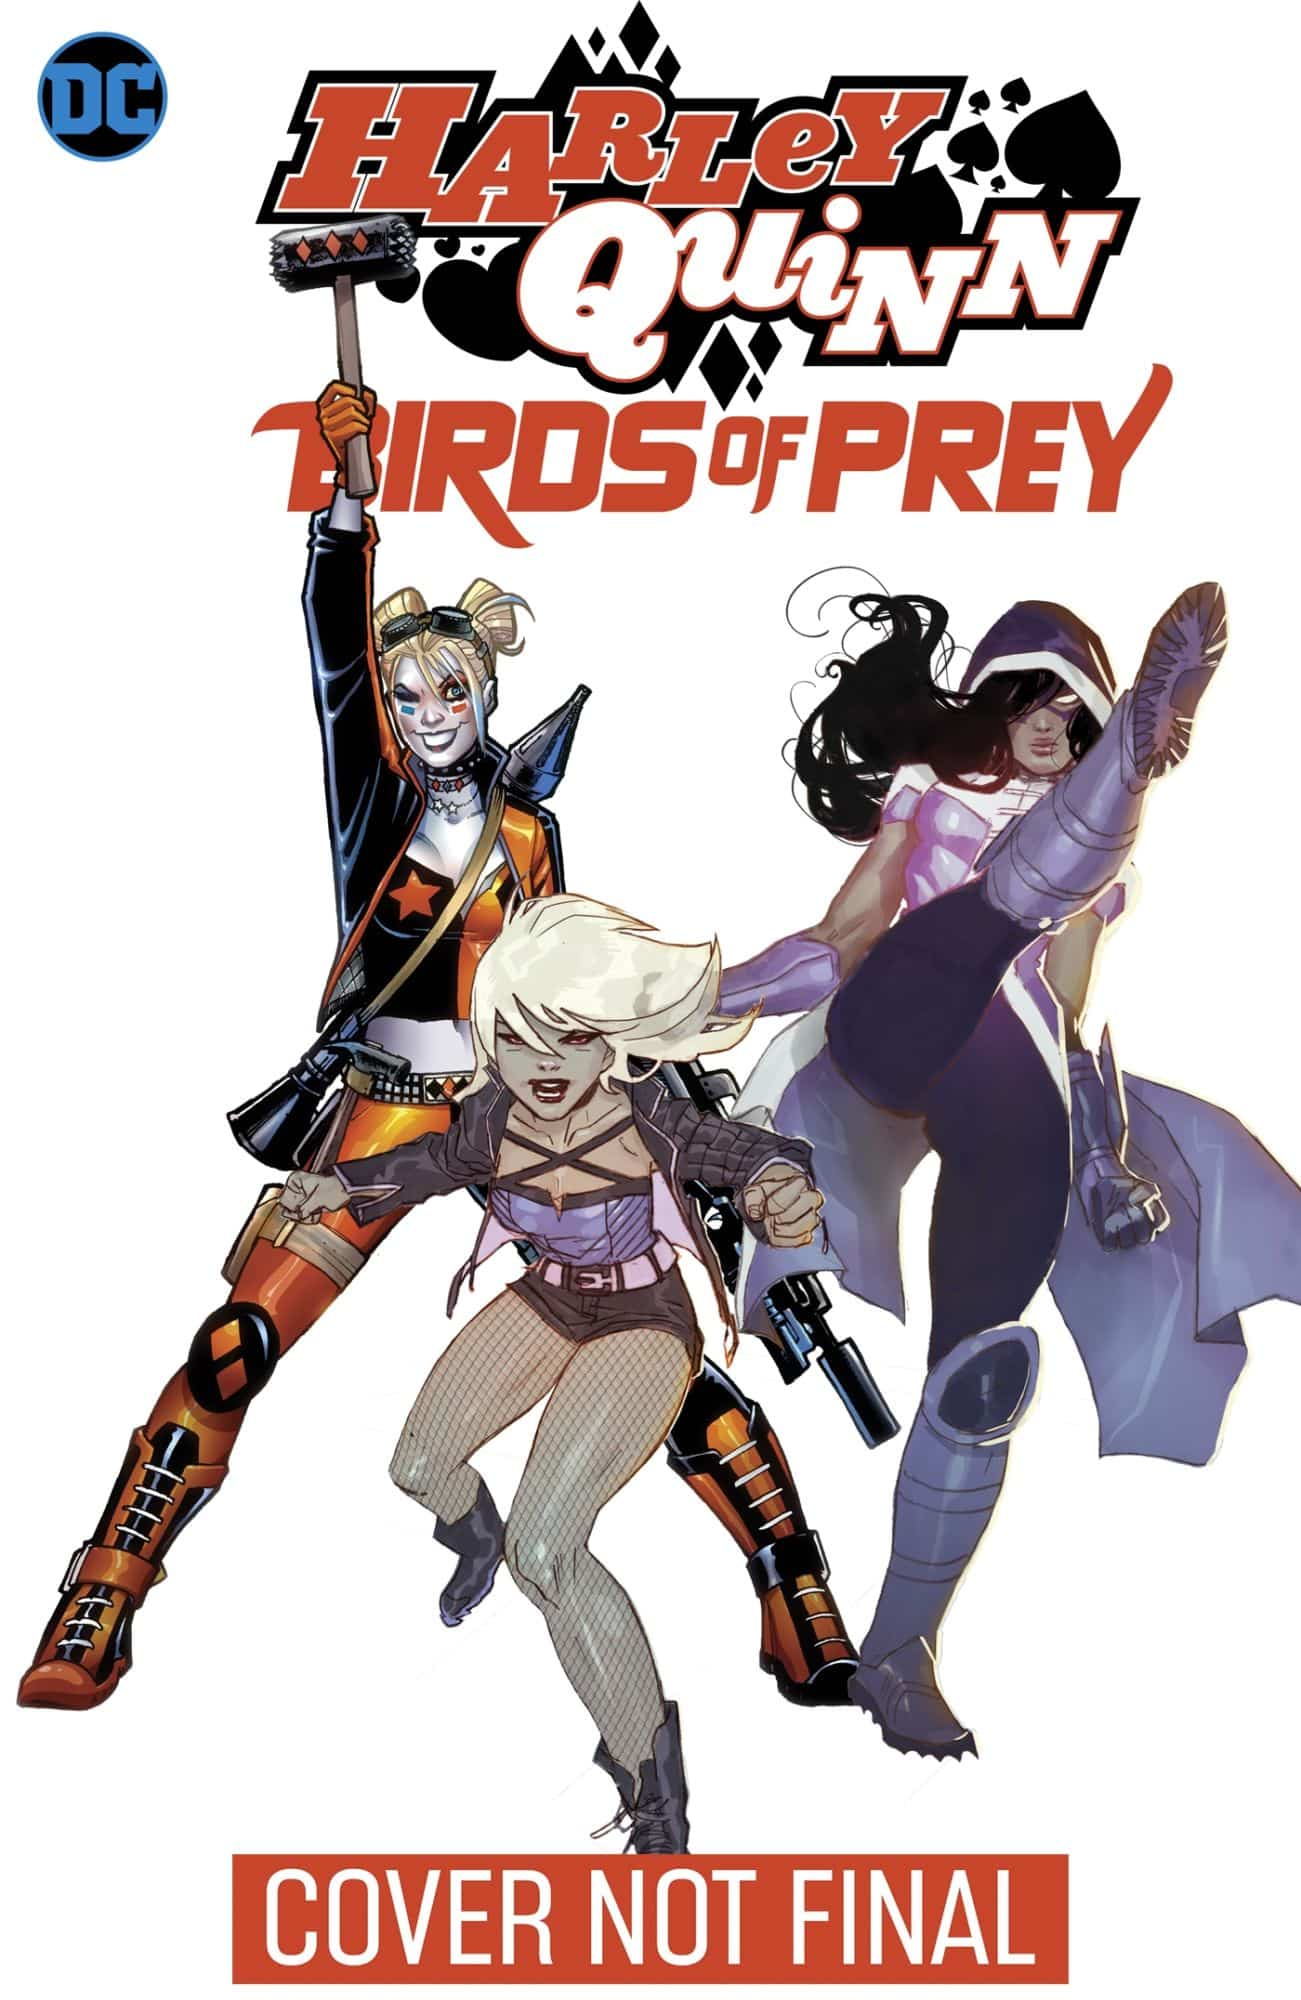 Dc Publish Tie Ins With Birds Of Prey And The Fantabulous Emancipation Of One Harley Quinn